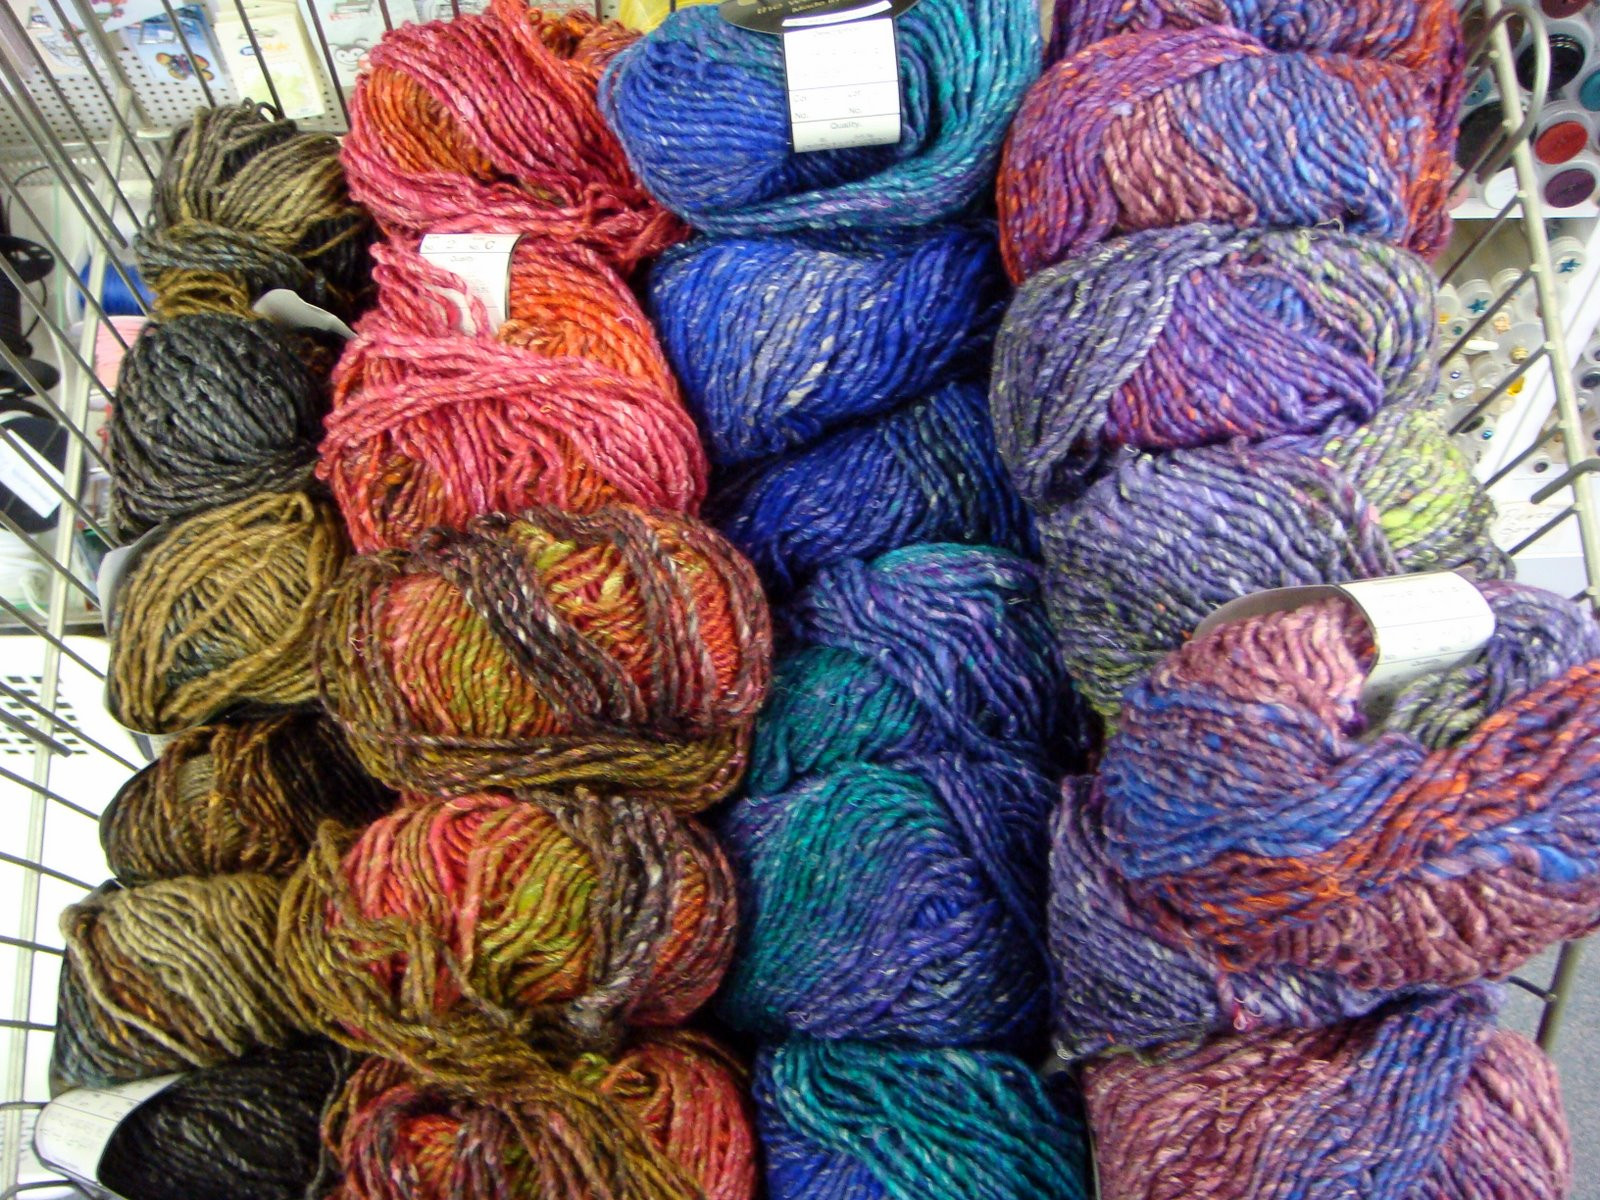 Noro Yarn Sale Awesome Will S Wools noro Sale 2011 Korting Discount Of Superb 49 Images noro Yarn Sale